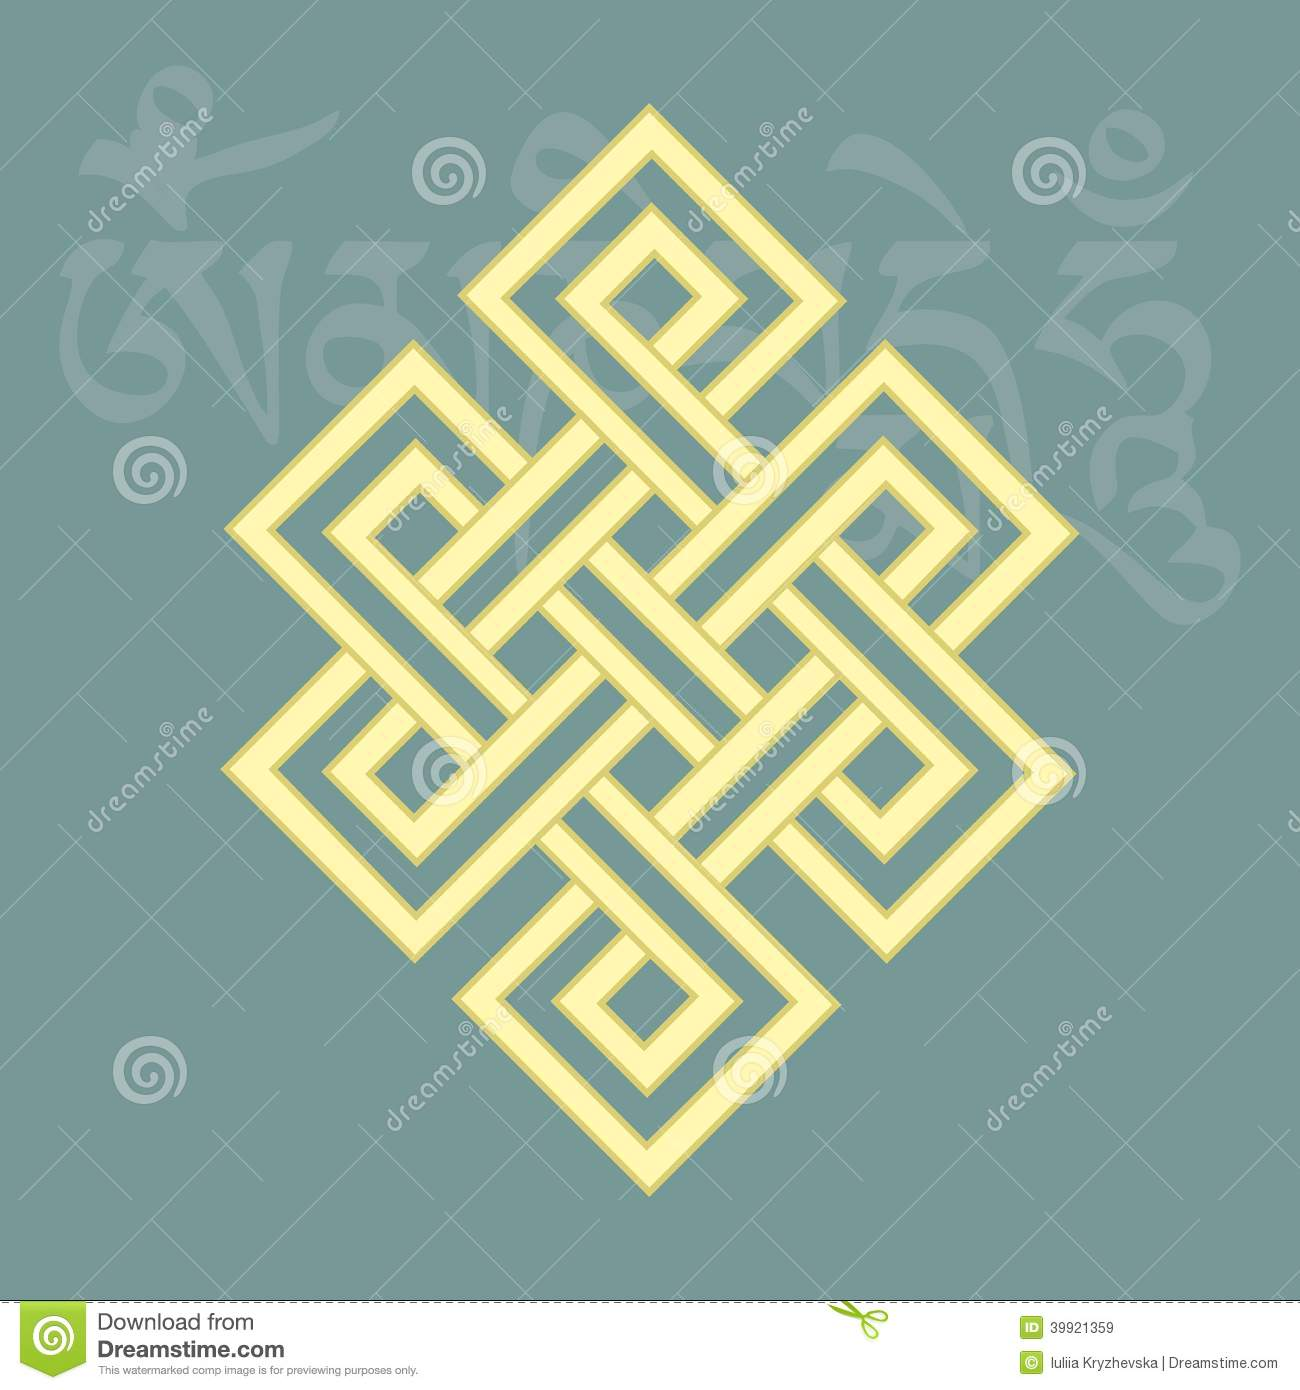 Celtic love knotsymbol of good fortunevector illustration stock endless knotone of eight auspicious buddhist religious symbols royalty free stock images buycottarizona Image collections